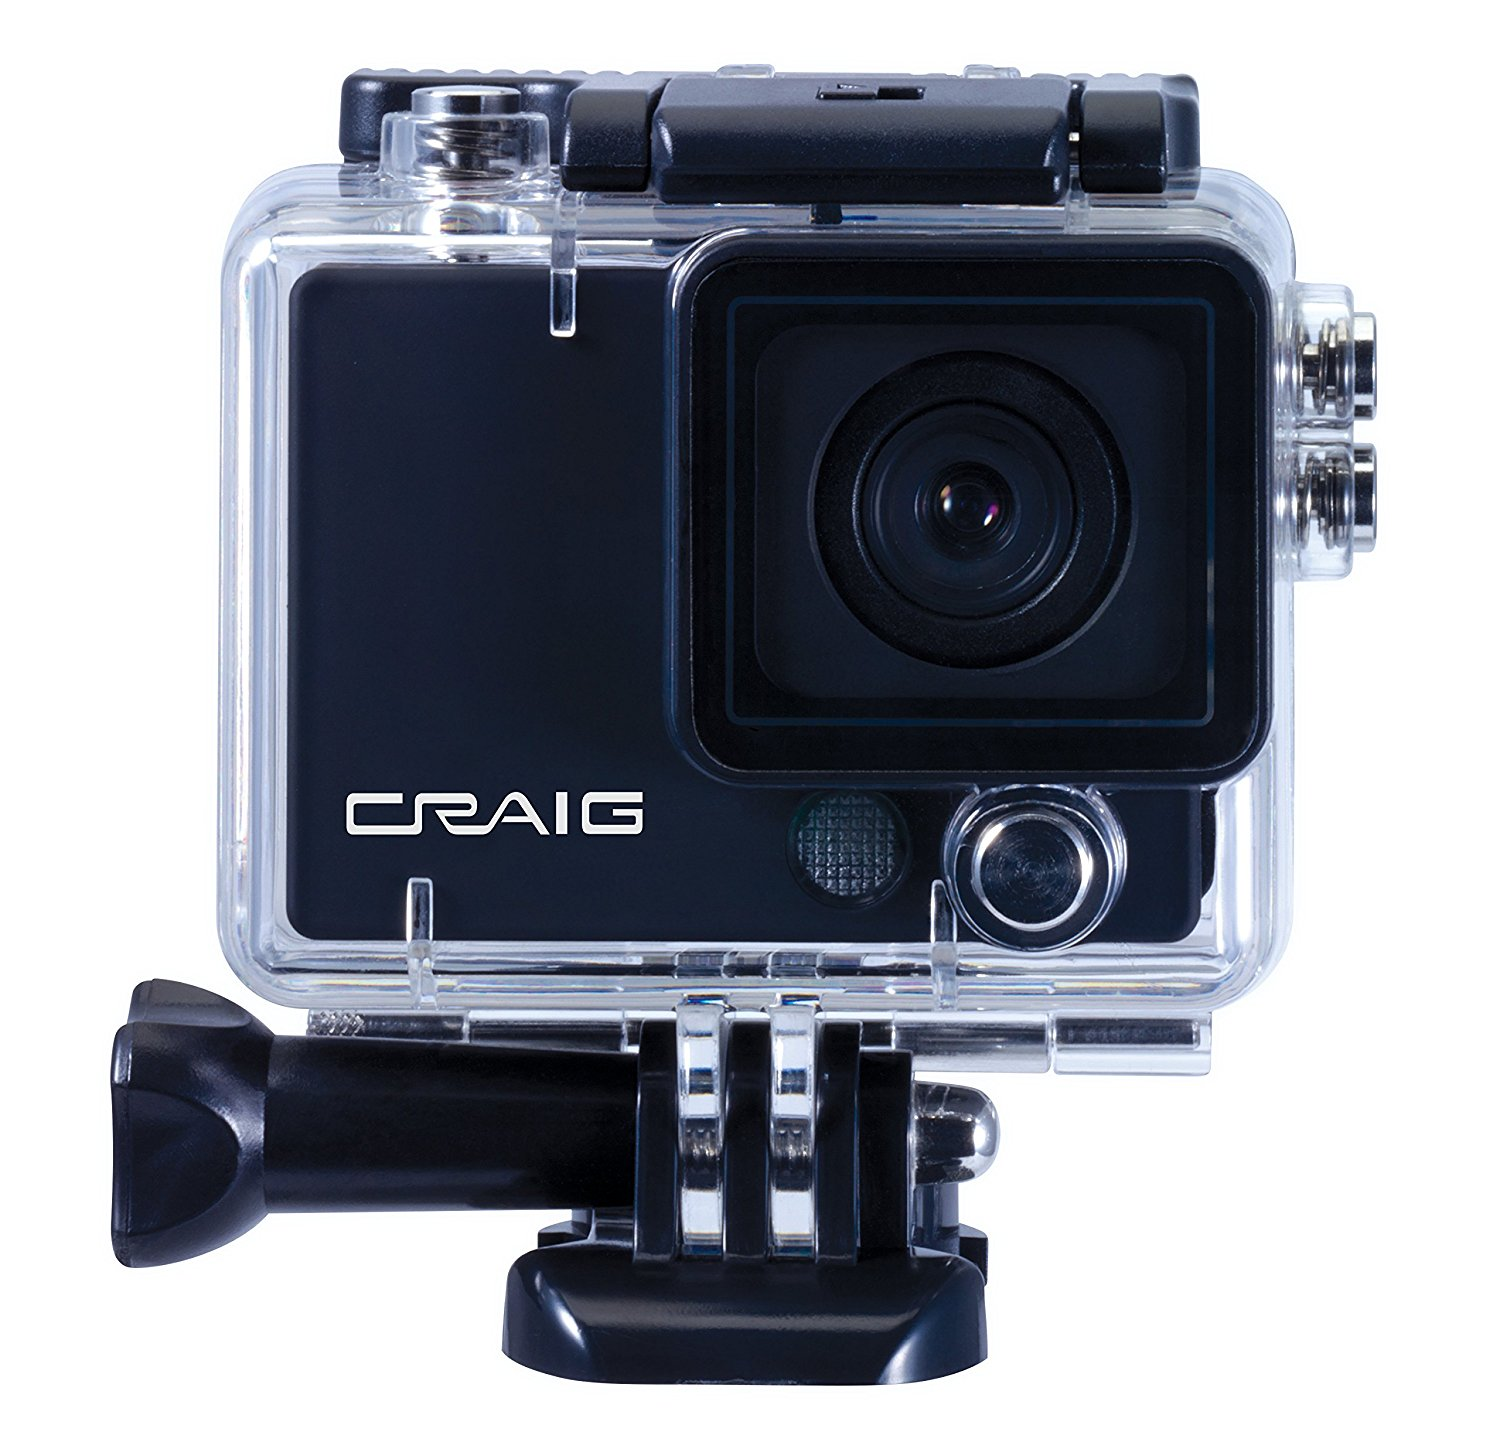 CRAIG CCR9030 DASH CAMERA 720P WITH VIDEO RECORDER